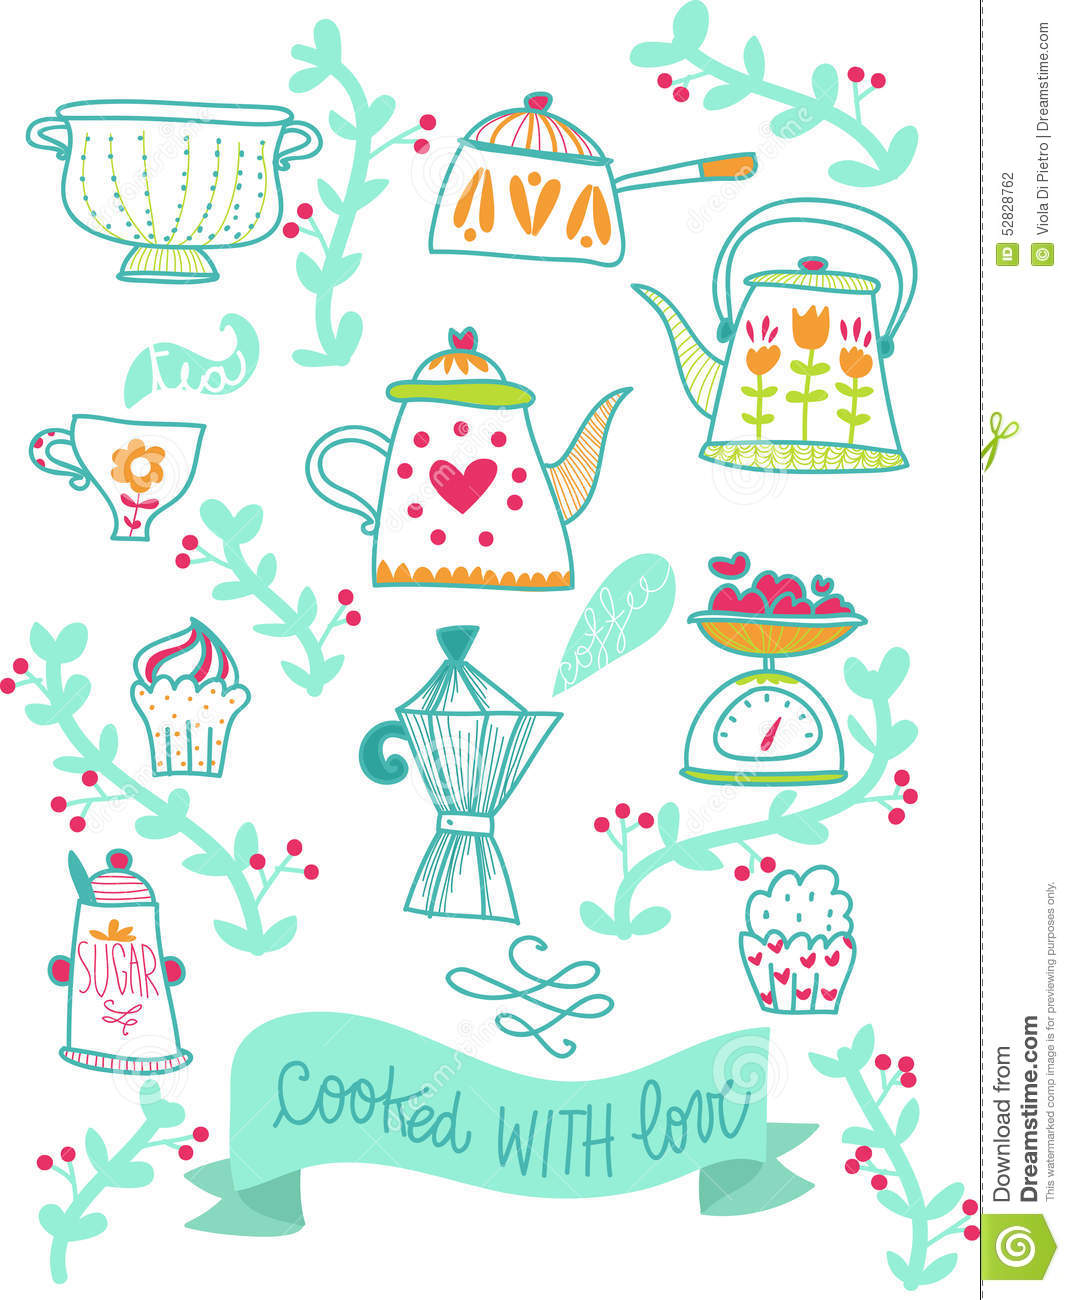 Retro Kitchen Illustration: Recipes Retro Kitchen Illustration Stock Illustration